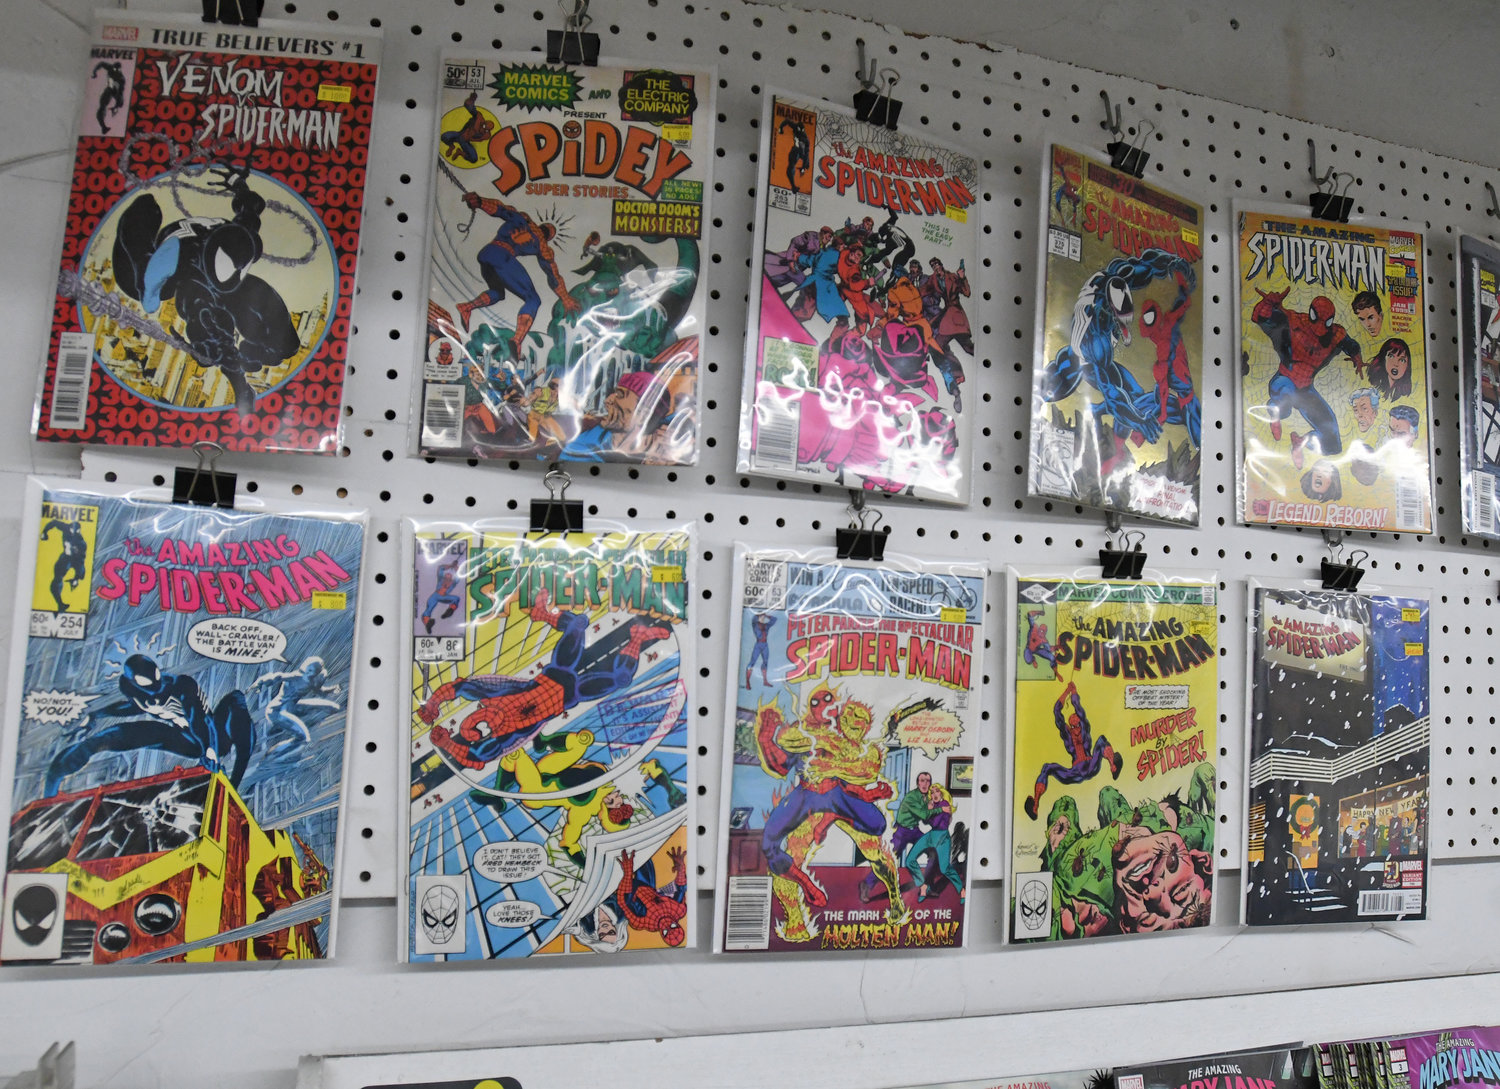 POPULAR ISSUES — With more than 30 years in business, Ravenswood comics in New Hartford has a rare collection of famous and valuable issues, including these Spider-Man comics.